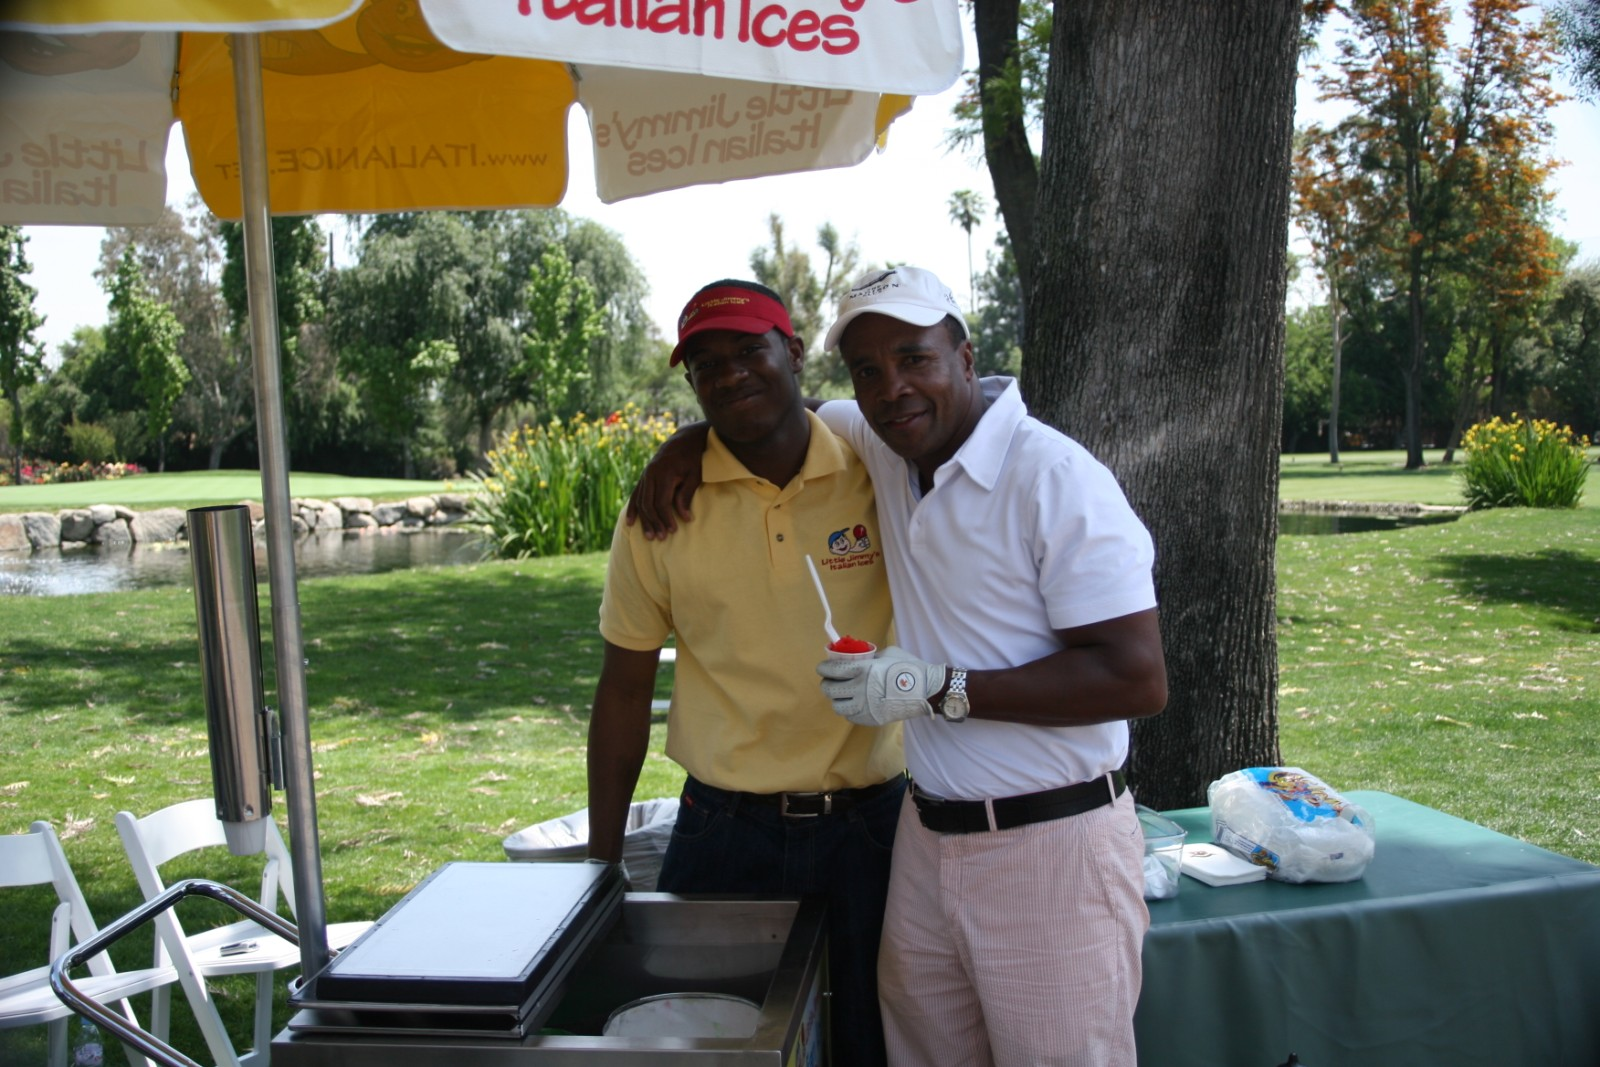 sugarray James Caan Golf Outing in California